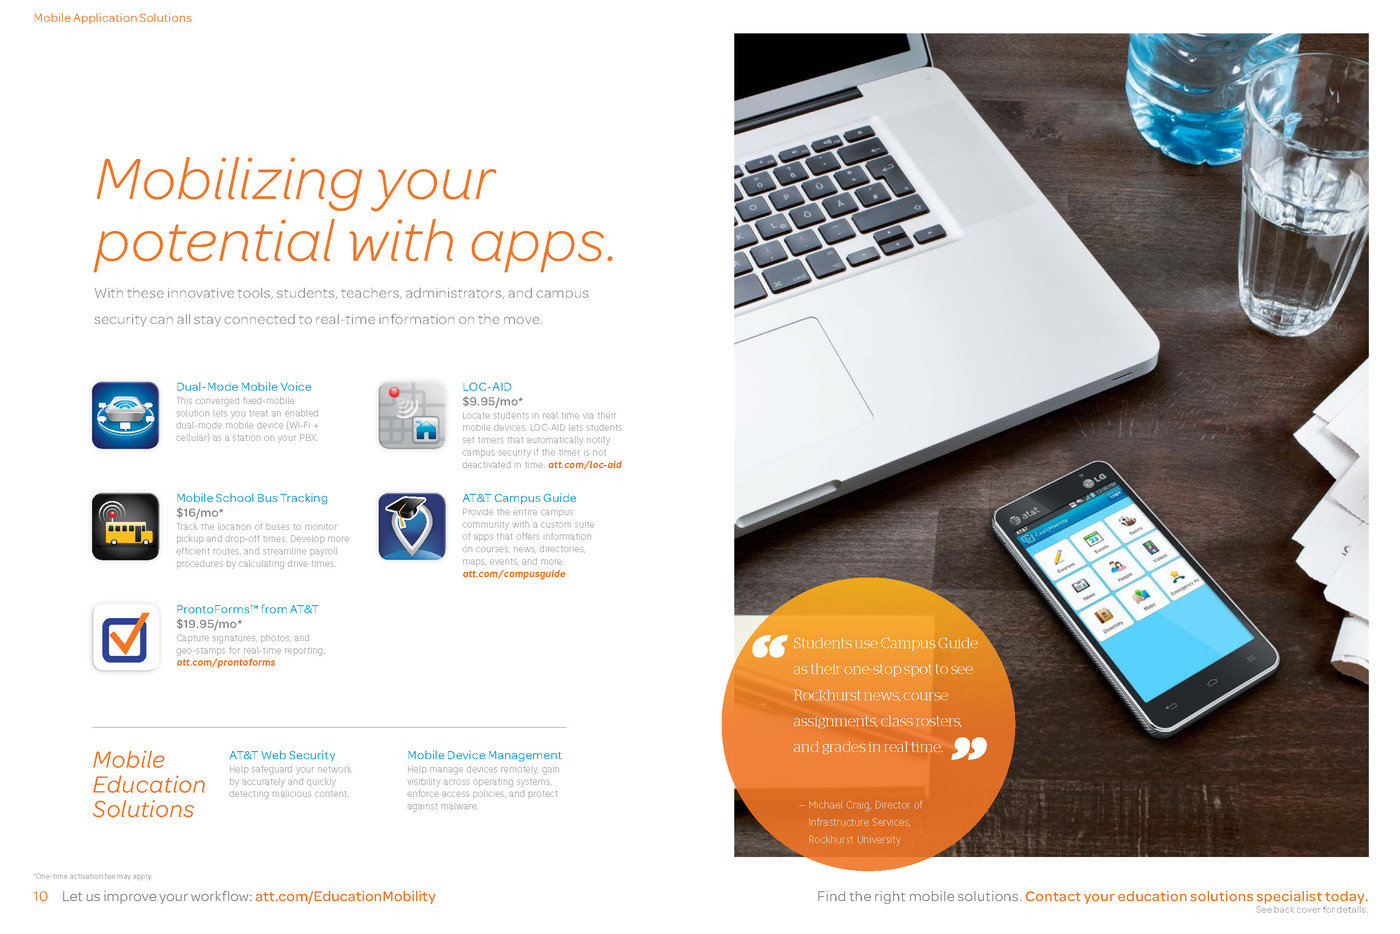 2012 (Late) AT&T SMB Magazine Printed/Online Version by Dirk